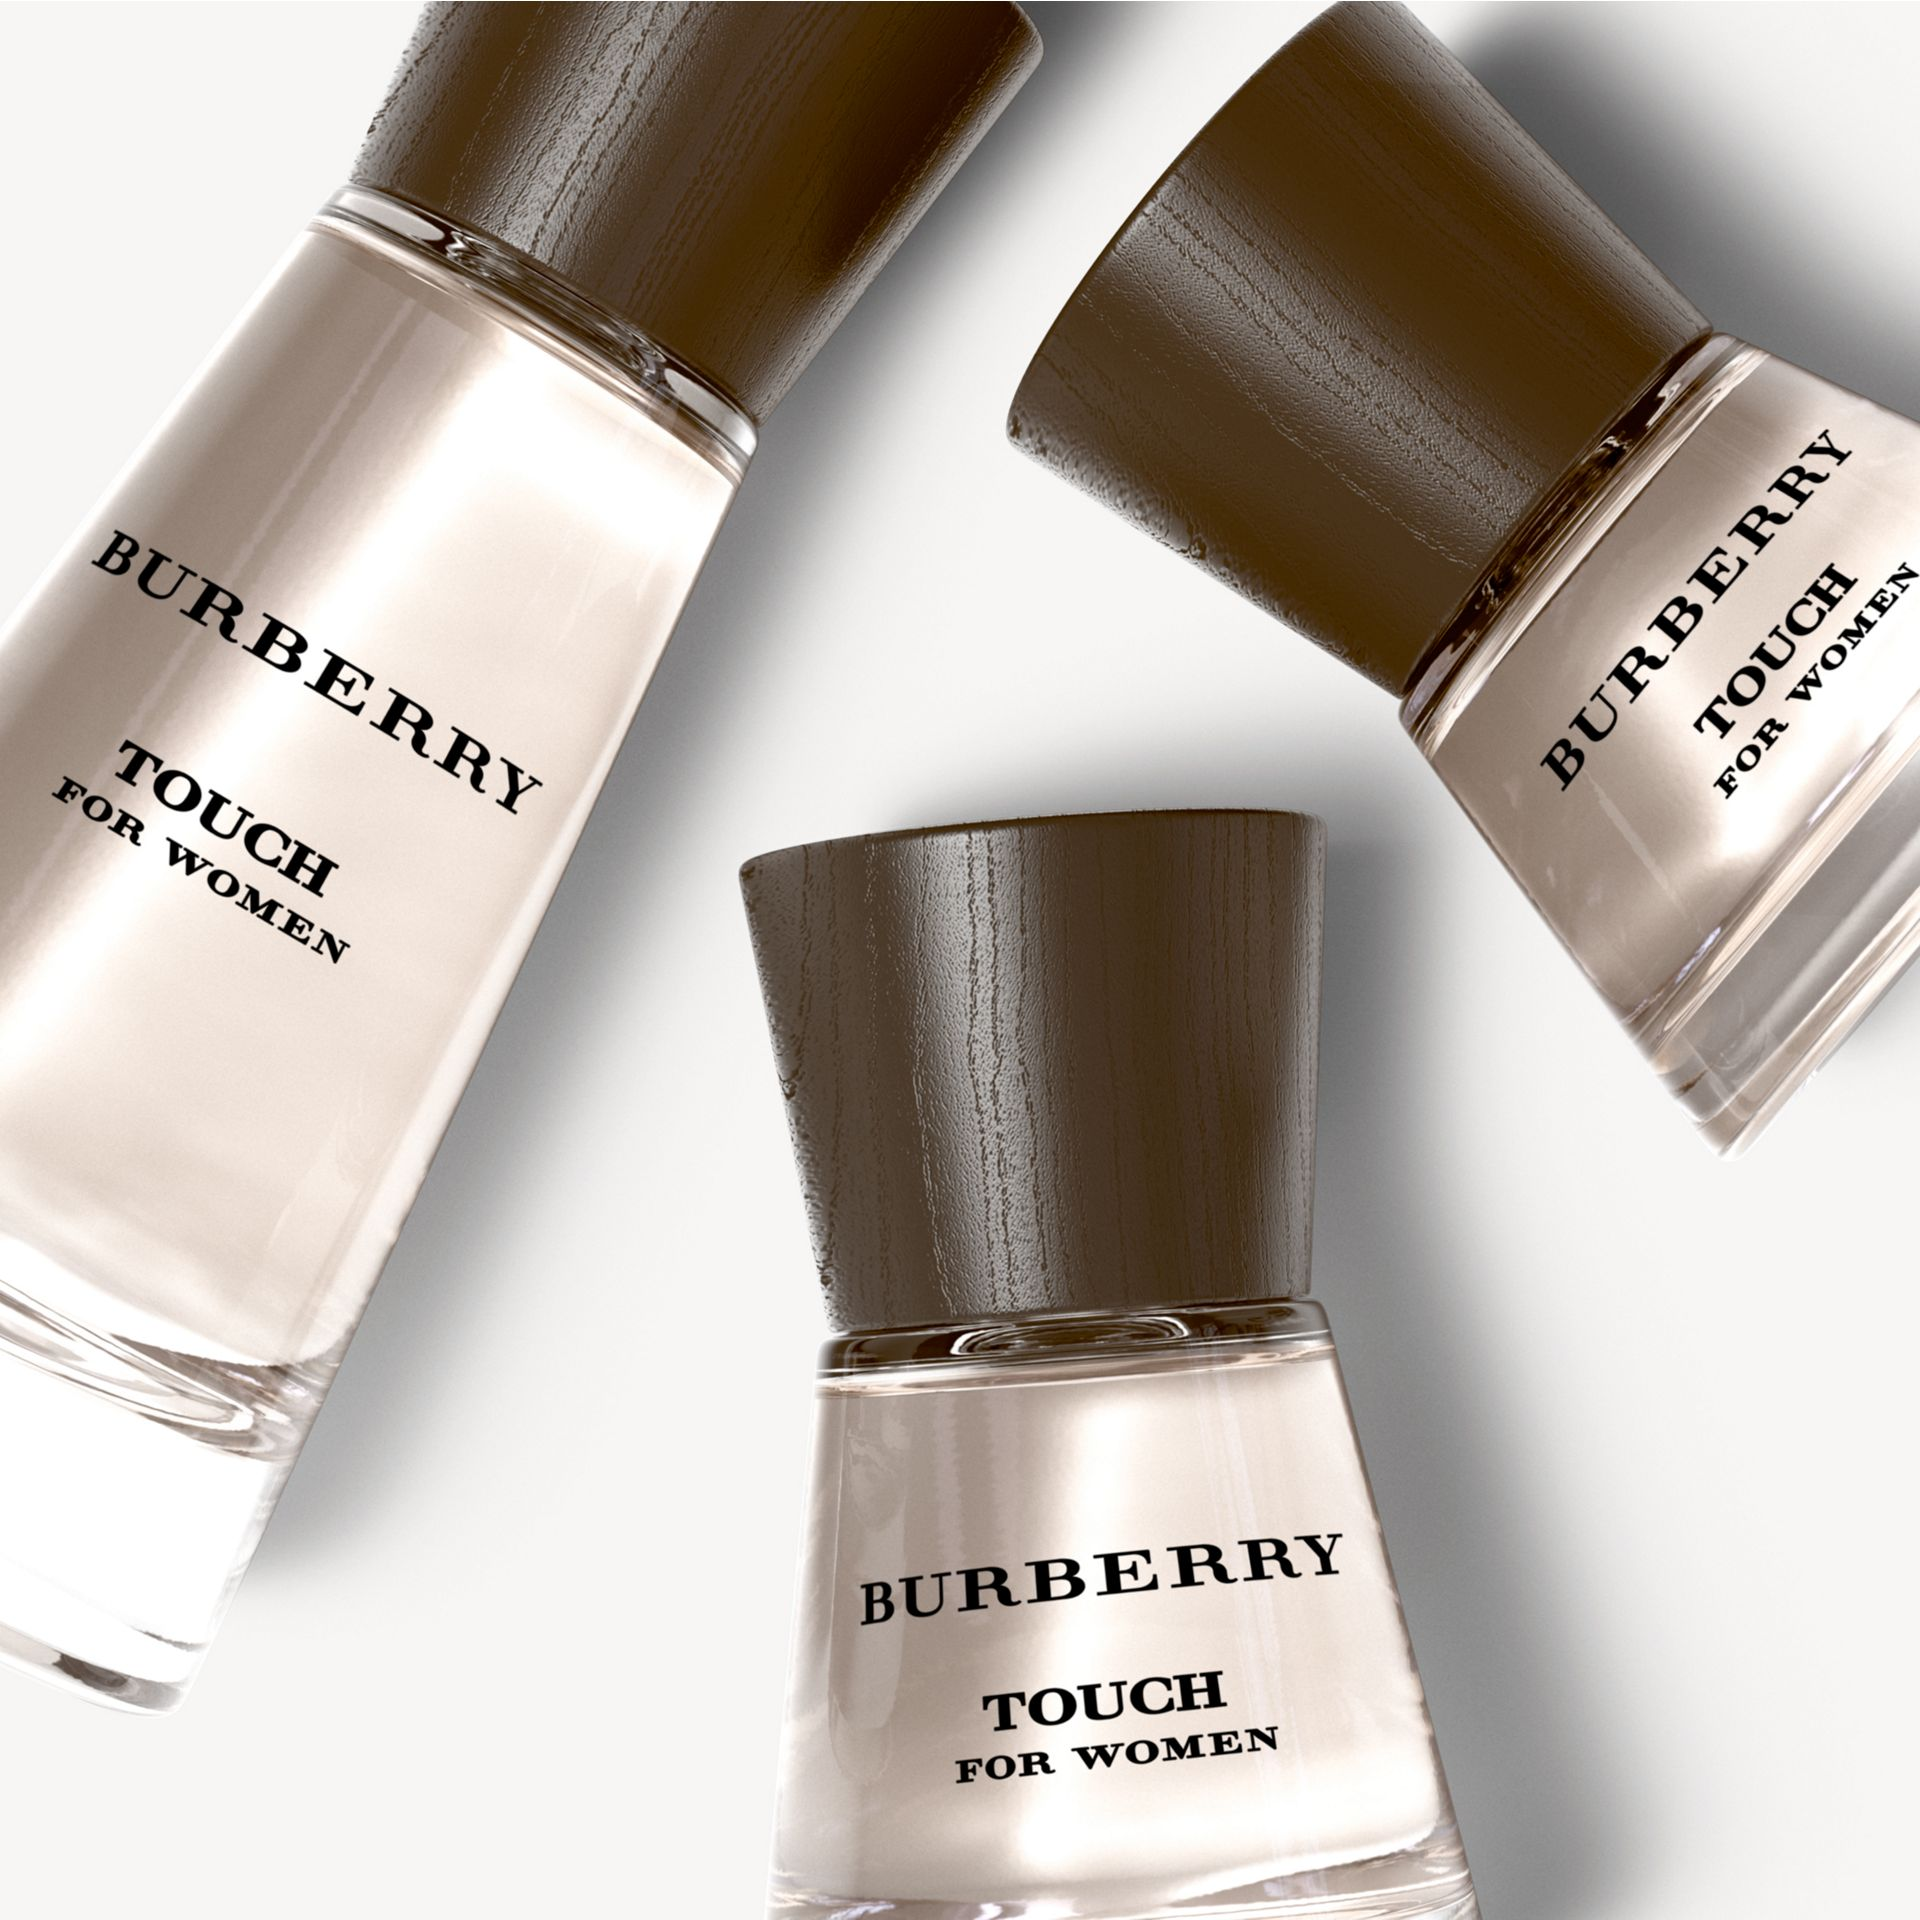 Burberry Touch Eau de Parfum 100ml - gallery image 2